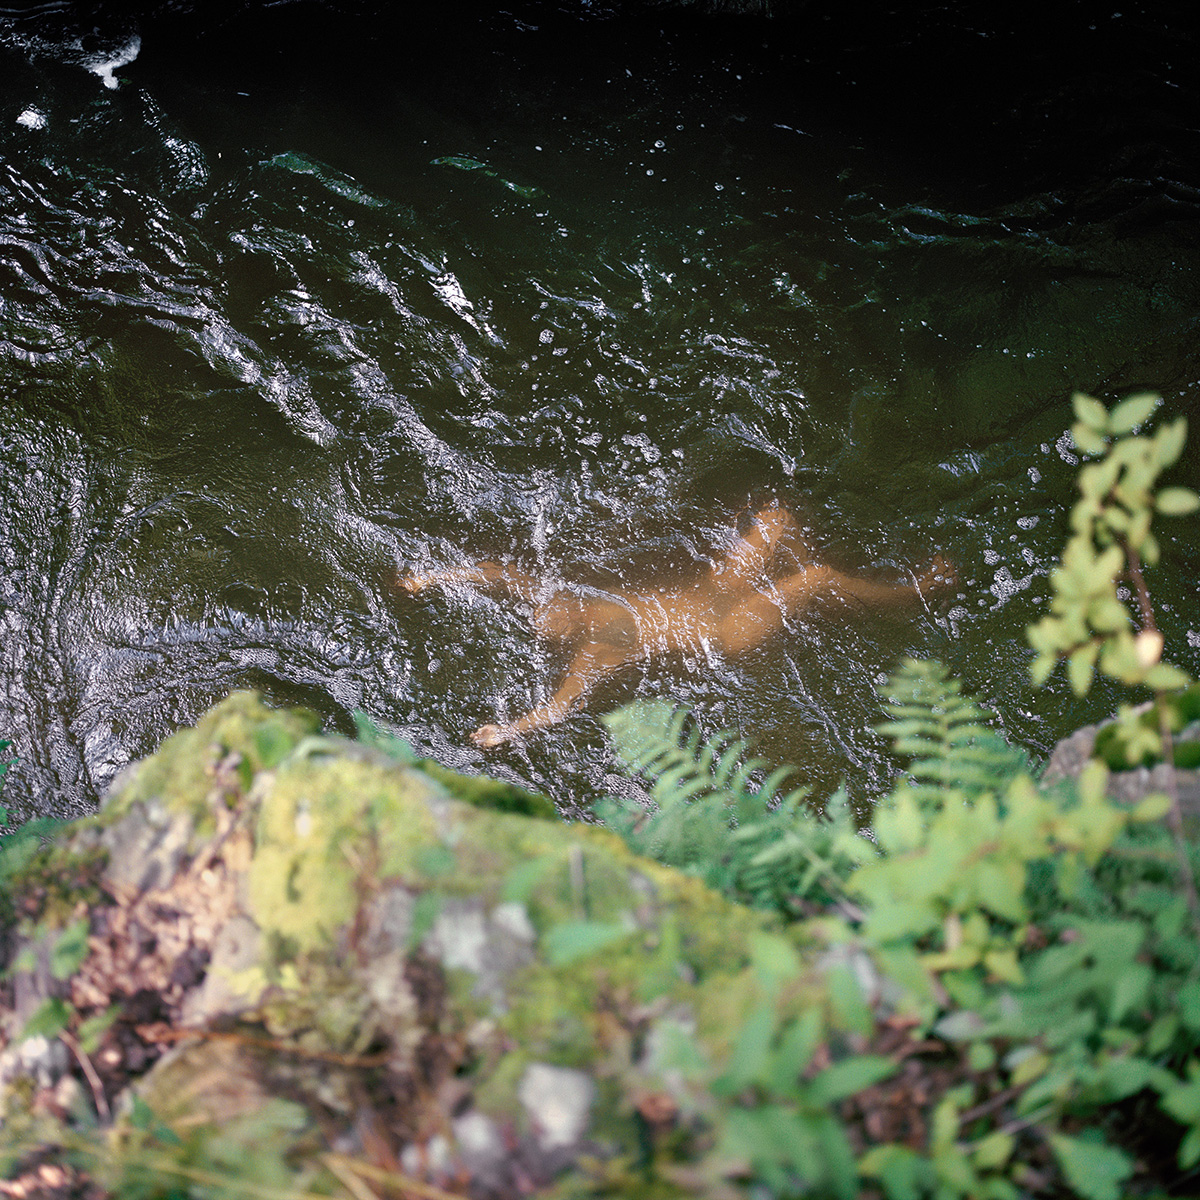 Vanessa at a swimming hole in Wassaic.